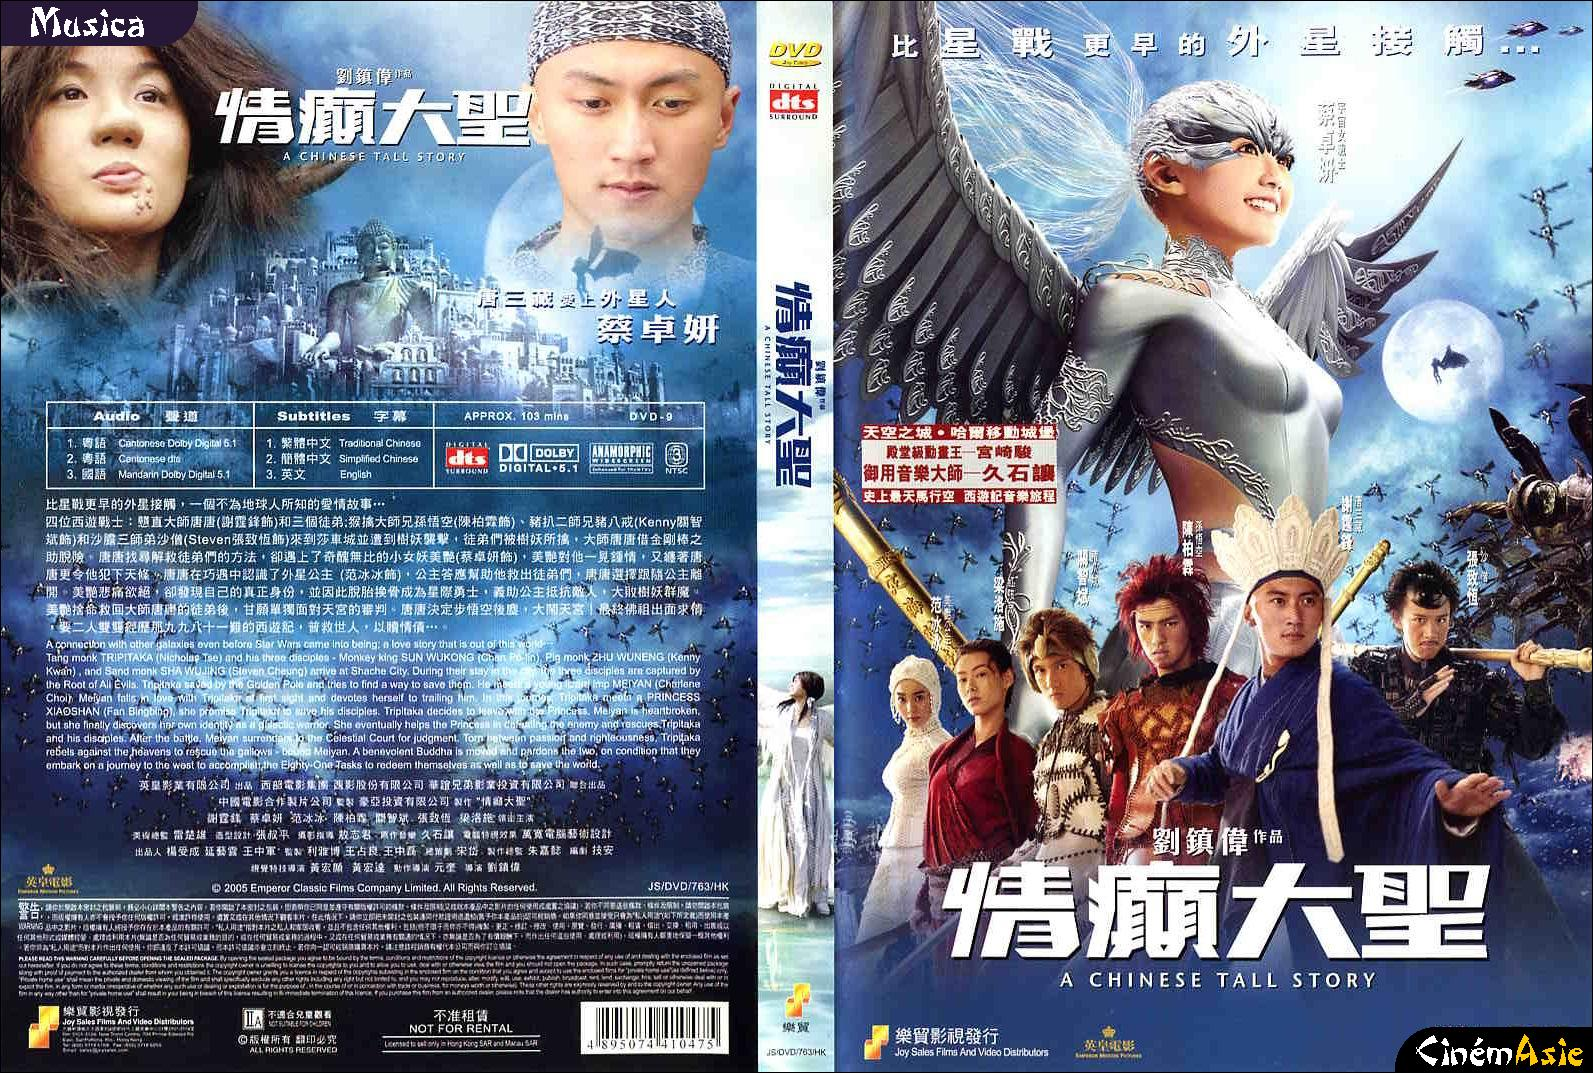 DVD A Chinese Tall Story Joy Sales